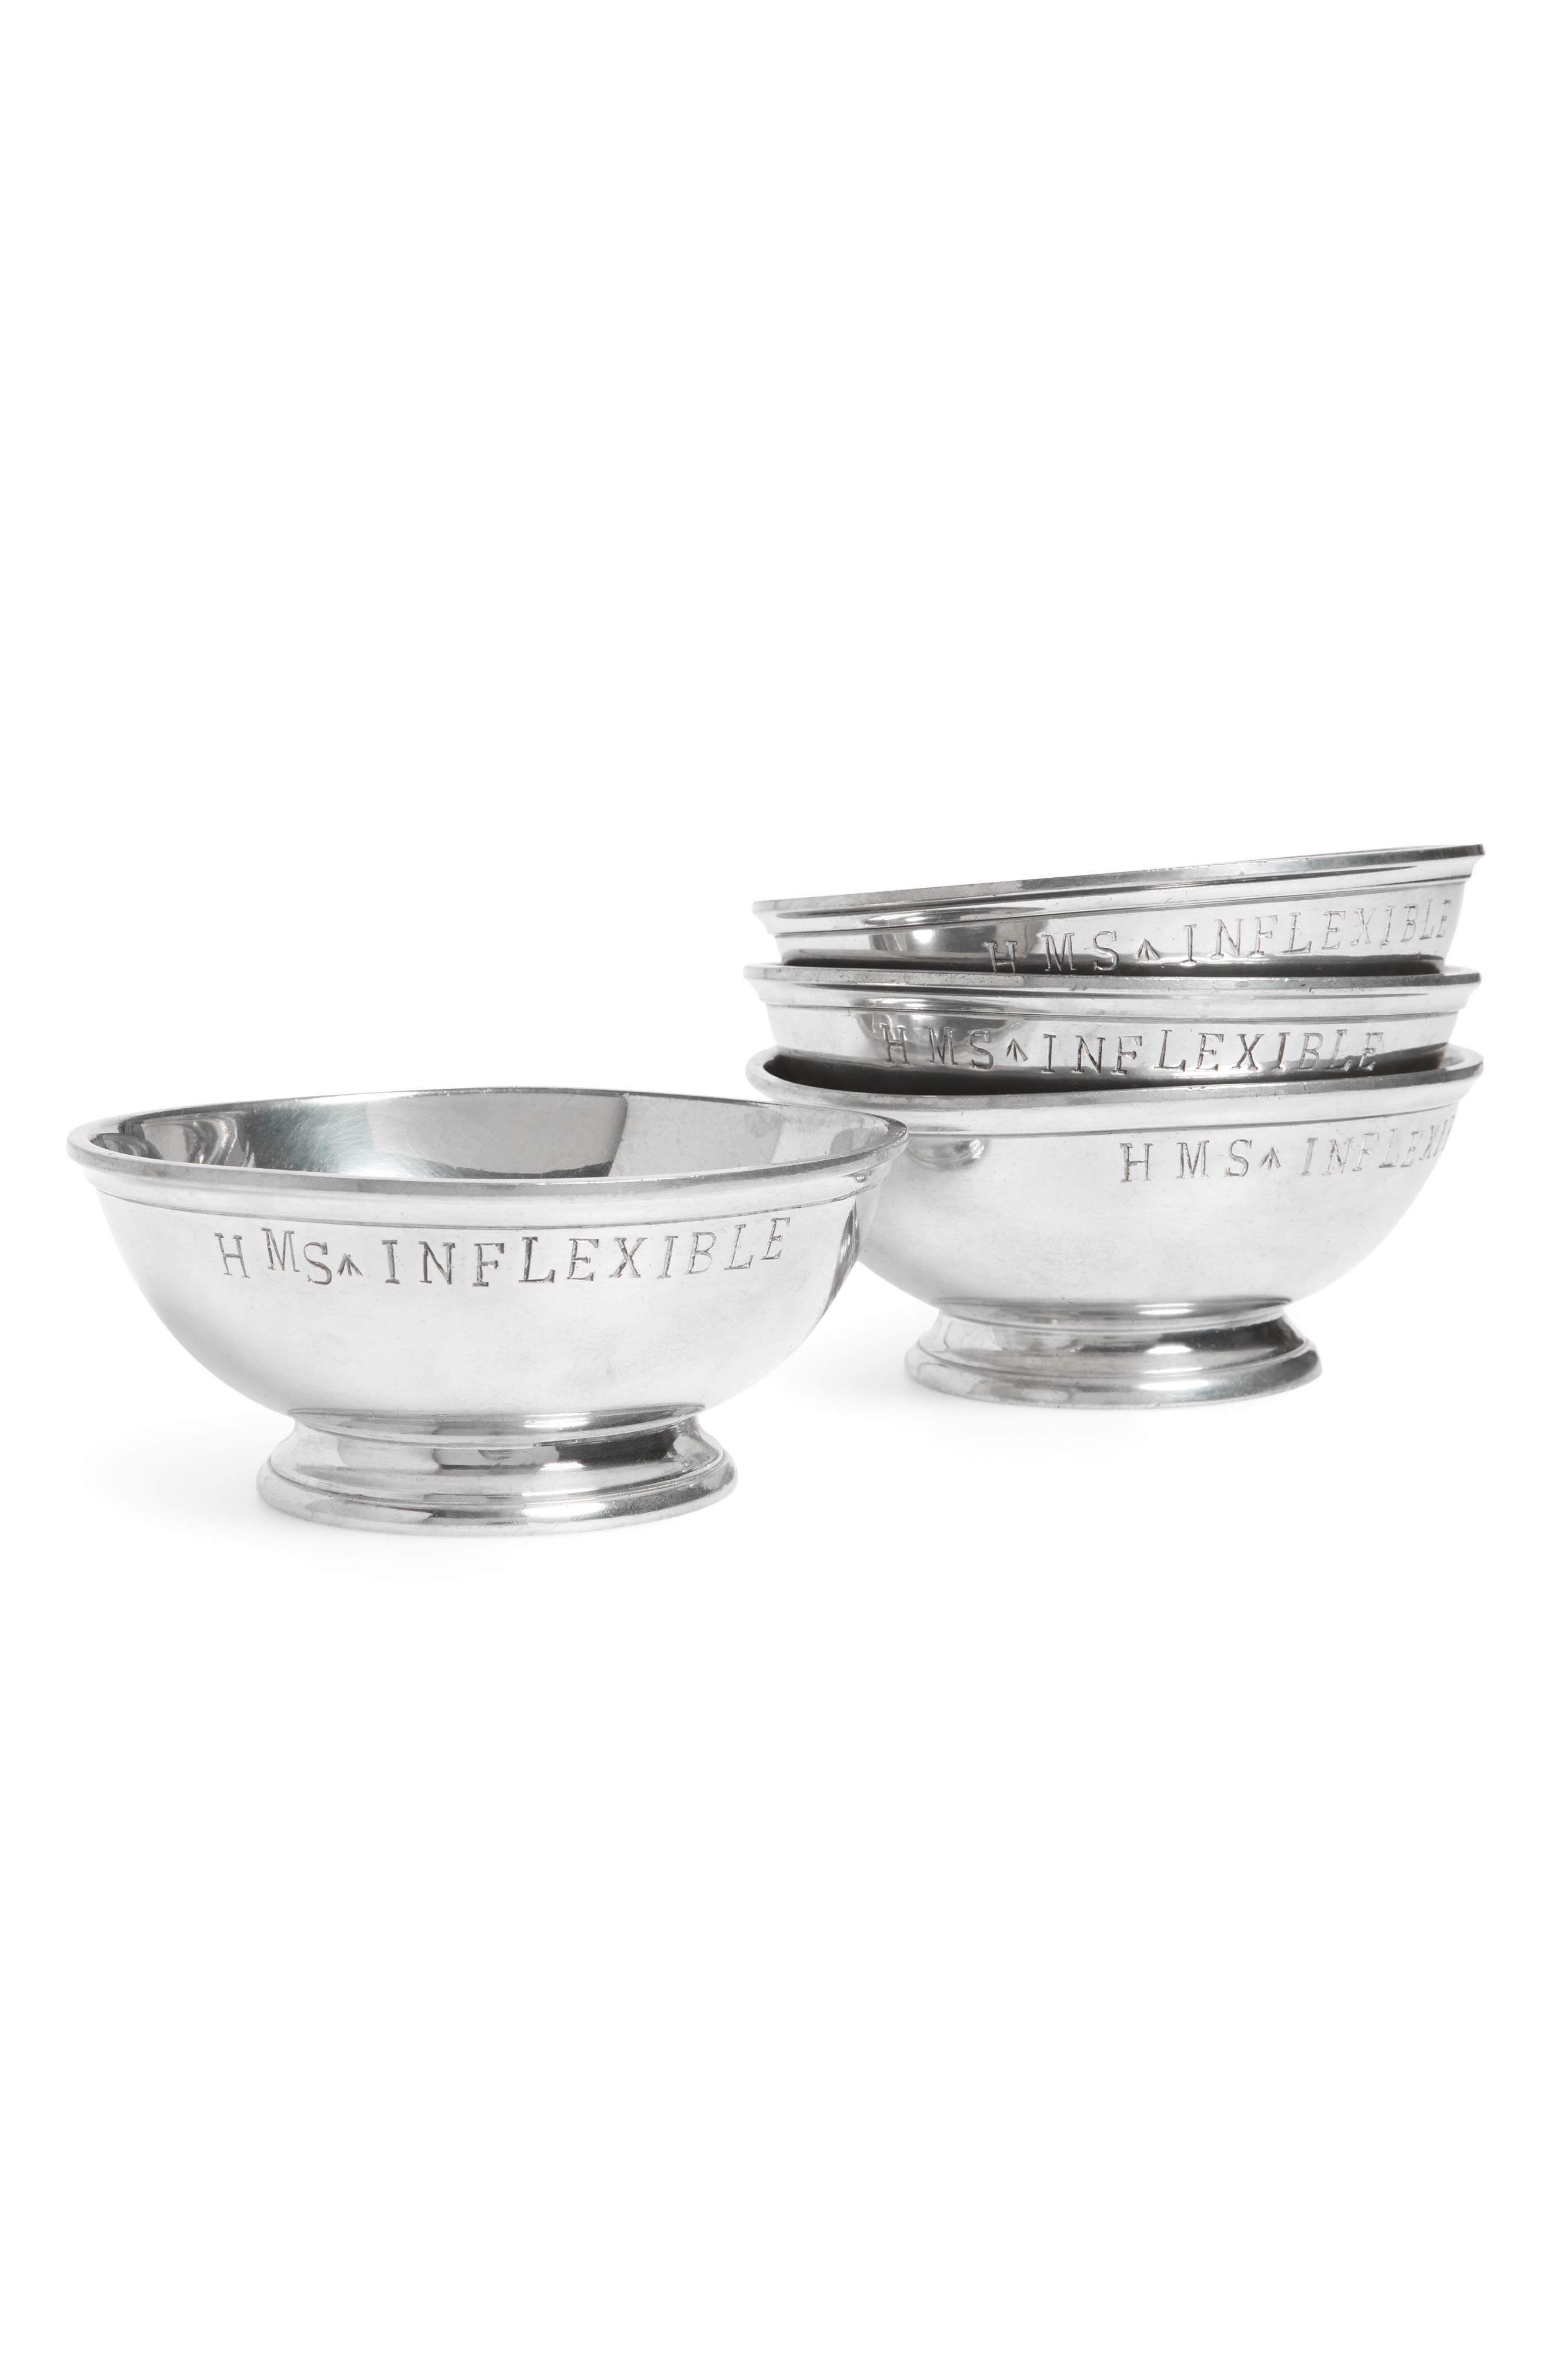 Main Image - Foundwell One of a Kind Vintage Set of 4 HMS Inflexible Stamped Pewter Bowls